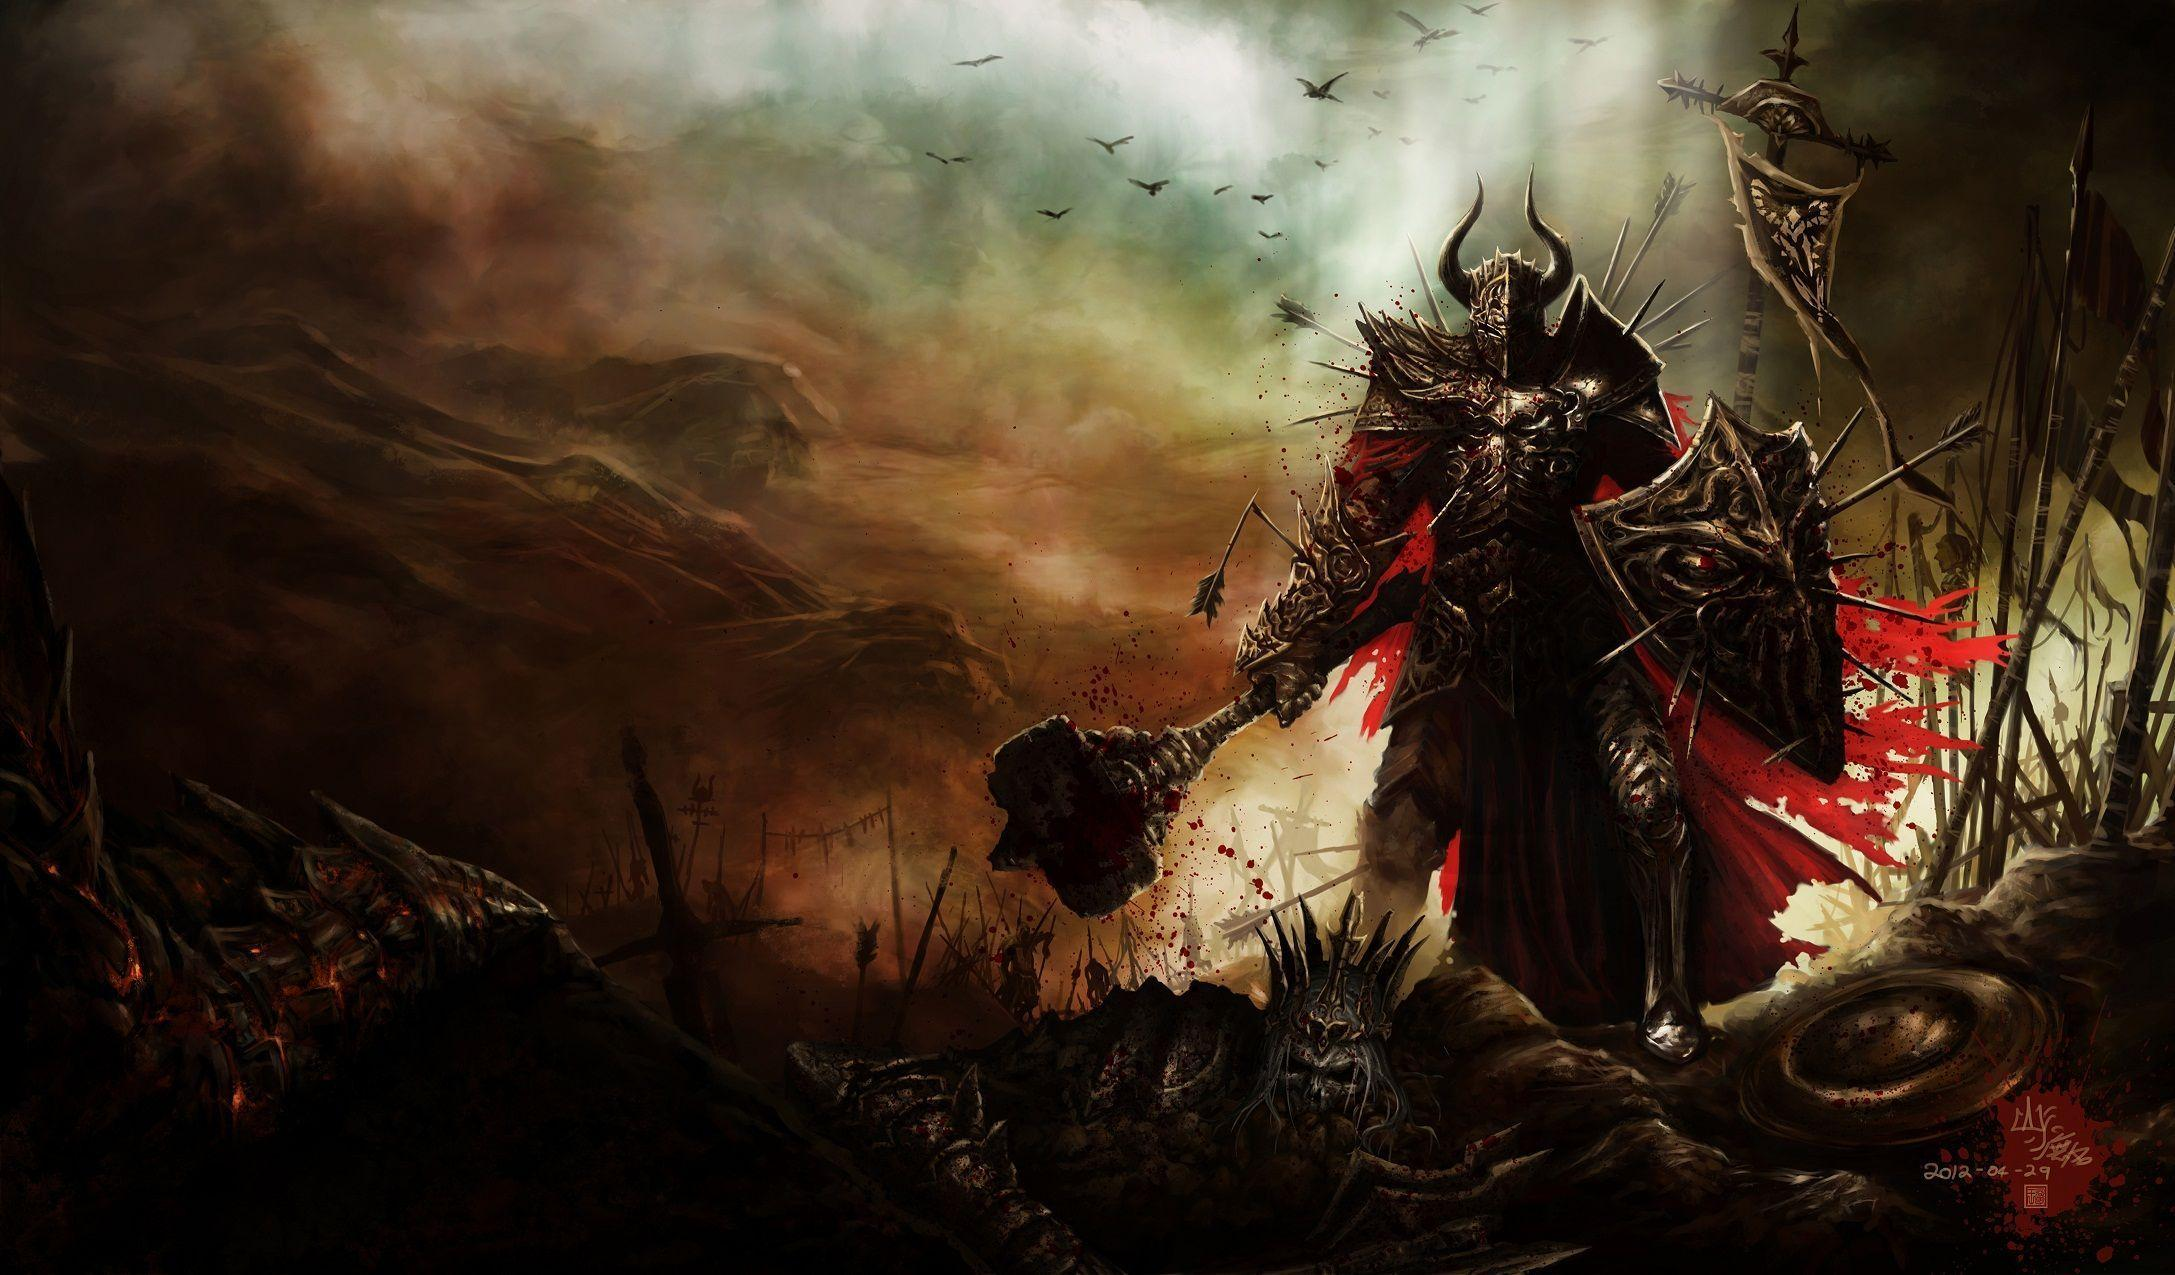 Diablo 3 ROS HD Wallpaper | PicMyGame